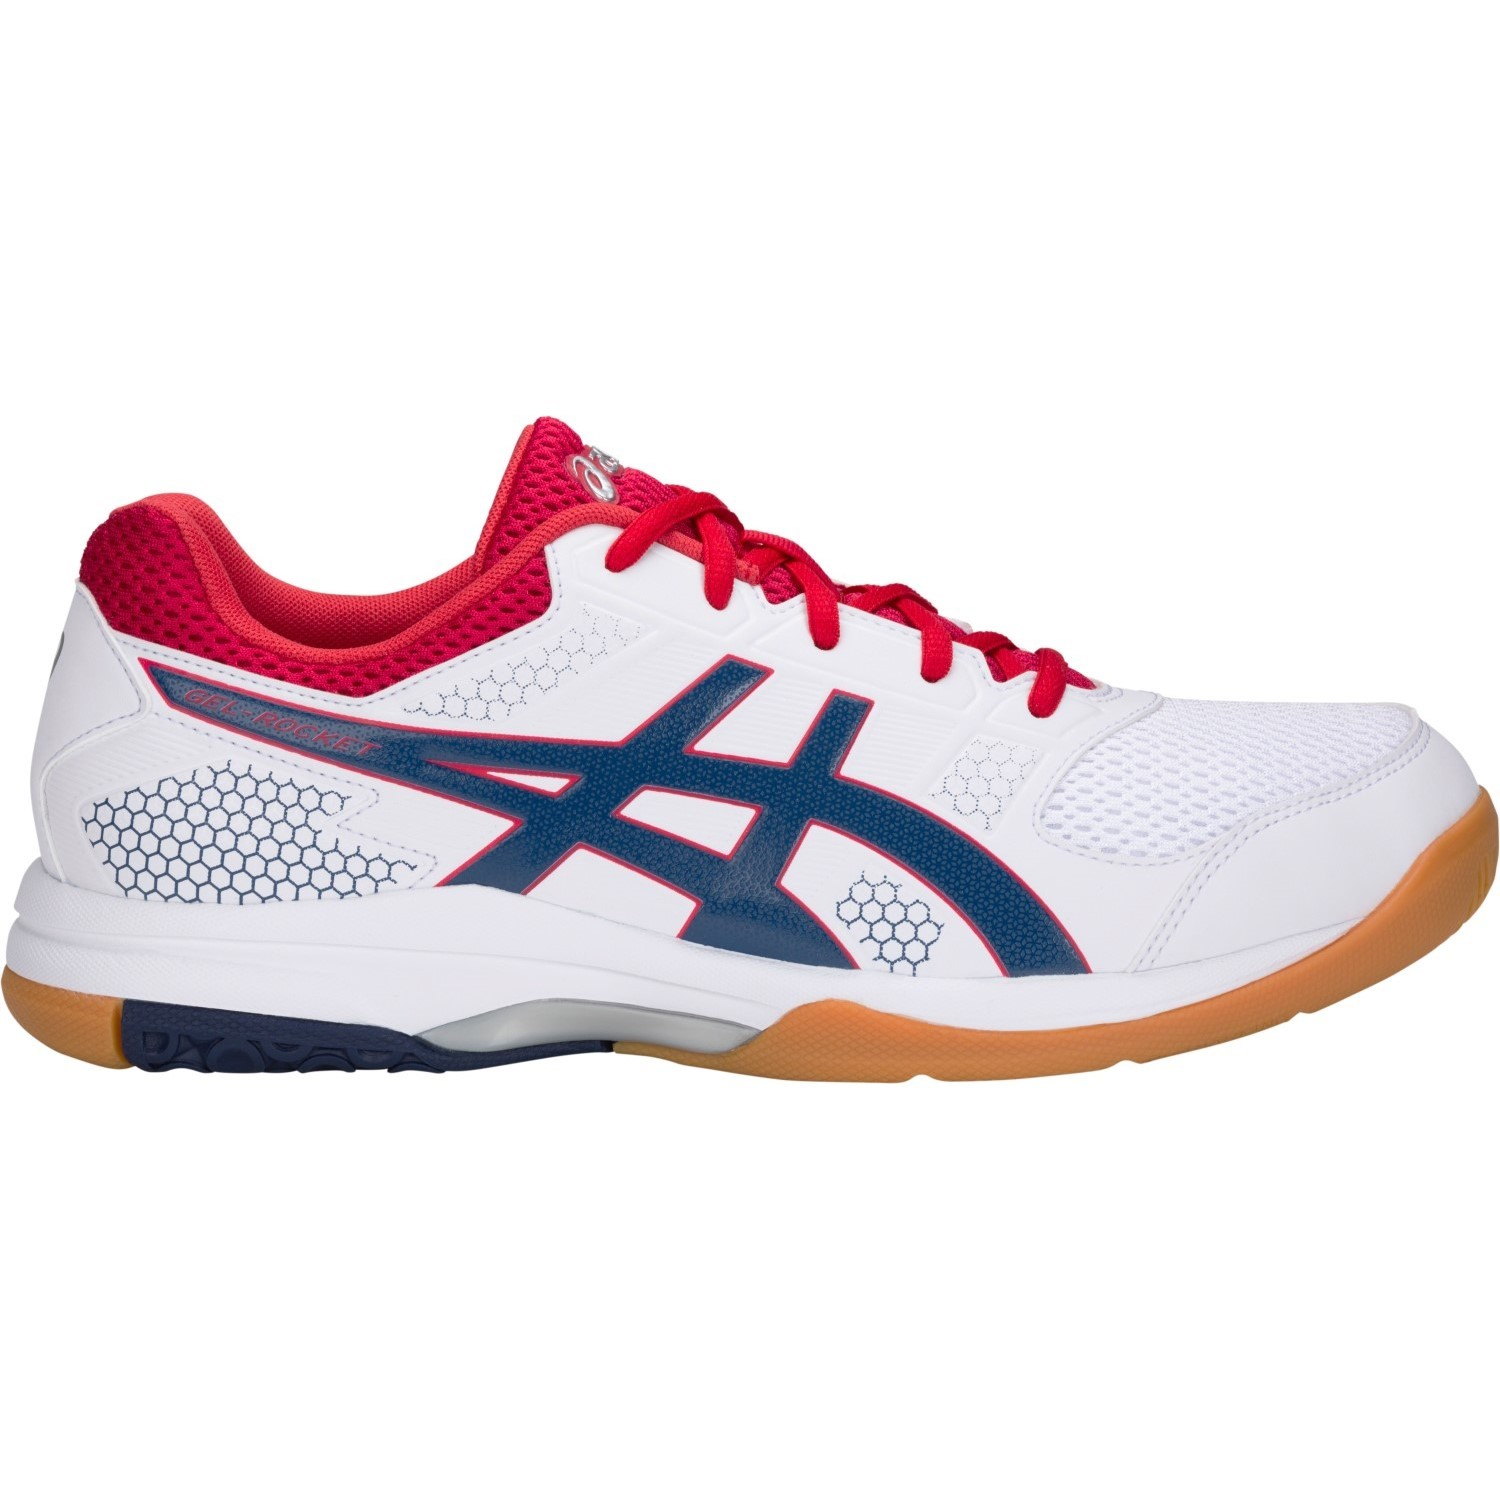 bf8b828c50d4 Asics Gel Rocket 8 - Mens Indoor Court Shoes - White Deep Ocean ...